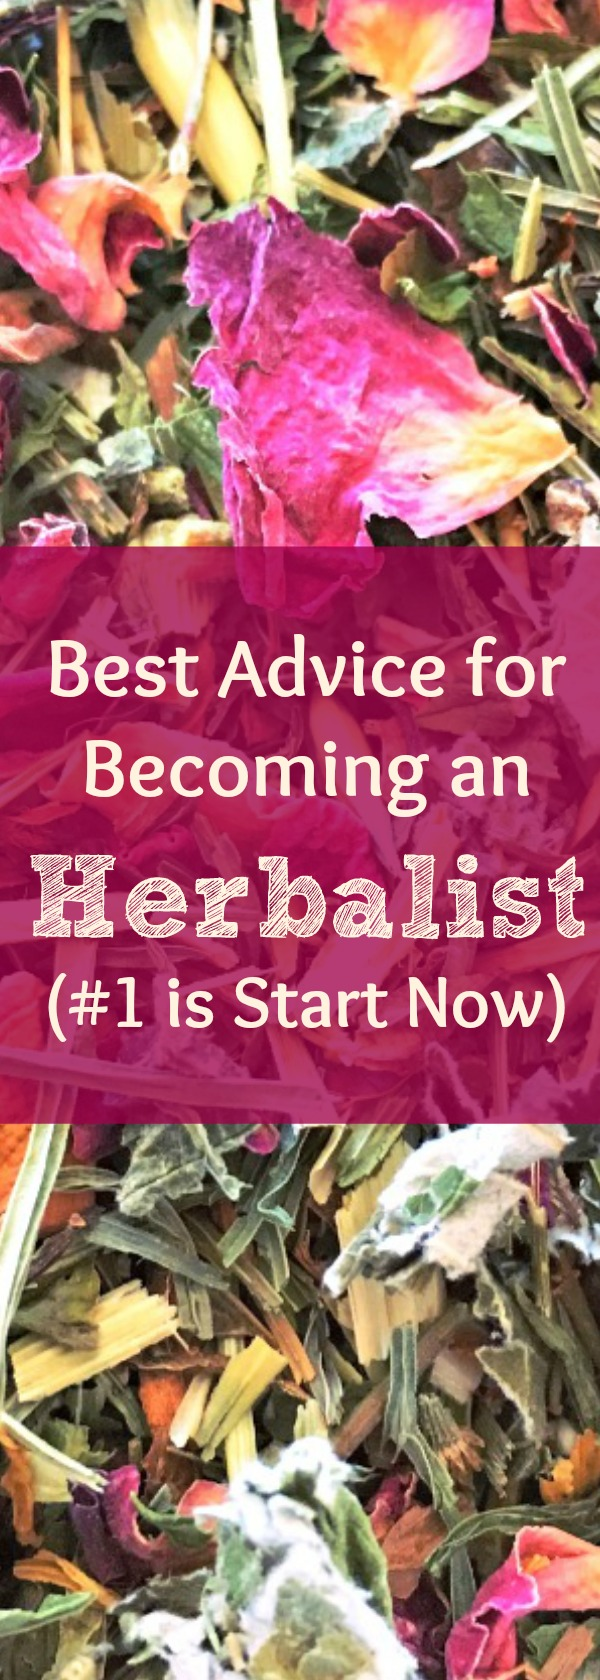 How to become an herbalist. Best advice from an herbalist on how to become a career or community herbalist. How to get started in your herbal career. How to get started learning about herbs! Find out my 8 best tips for learning herbalism. #herbalism #learnherbs #howto #naturalremedy #health #naturalhealth #healingharvesthomestead